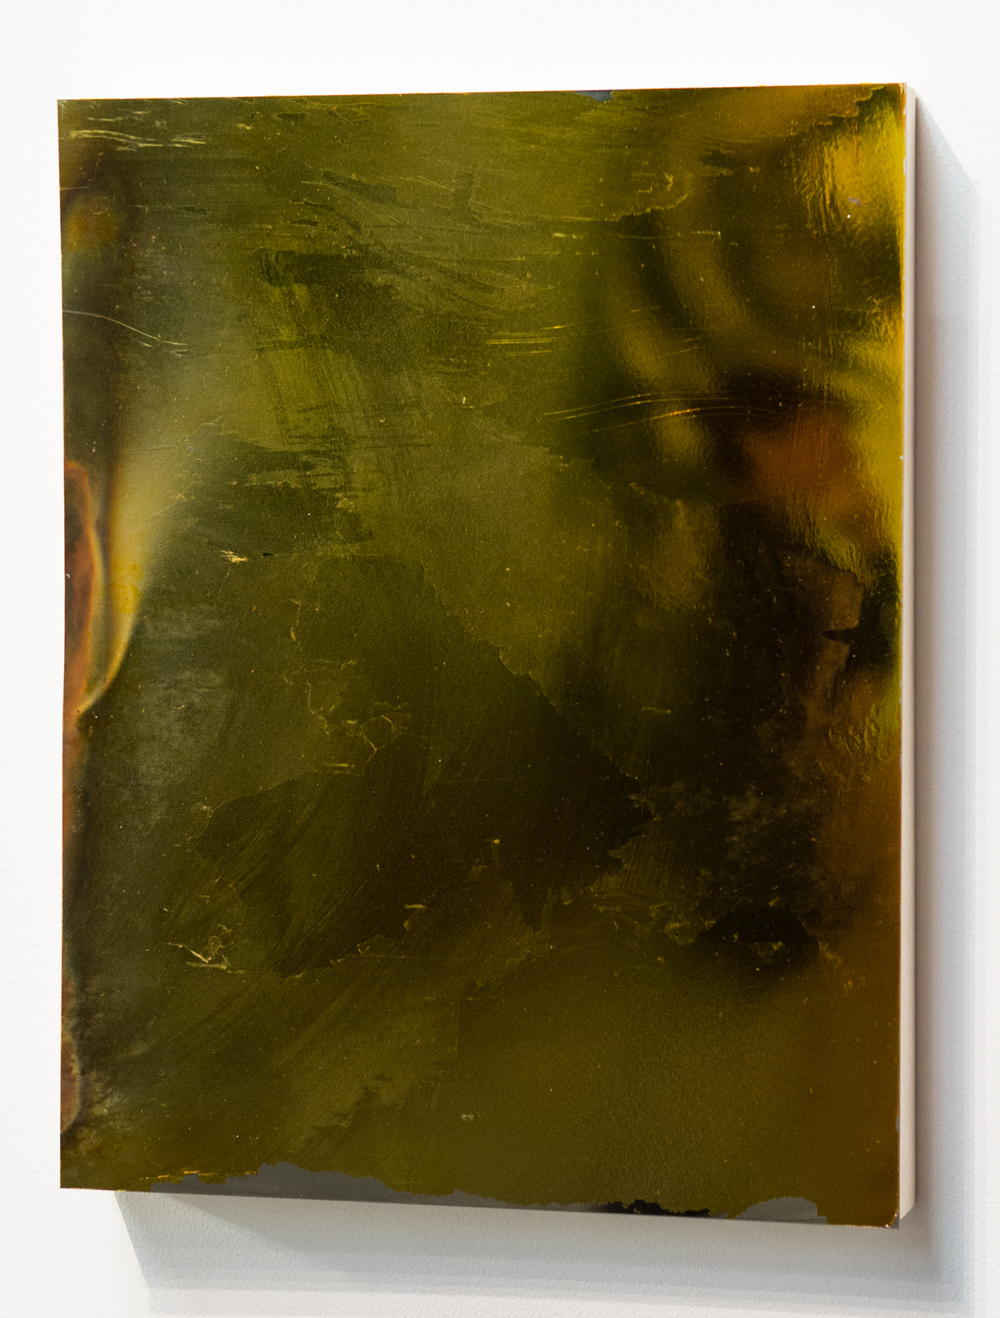 MLSL_09_Bunny, 2015  Gold tint on stainless steel  18 x 14 in (45.72 x 35.56 cm)